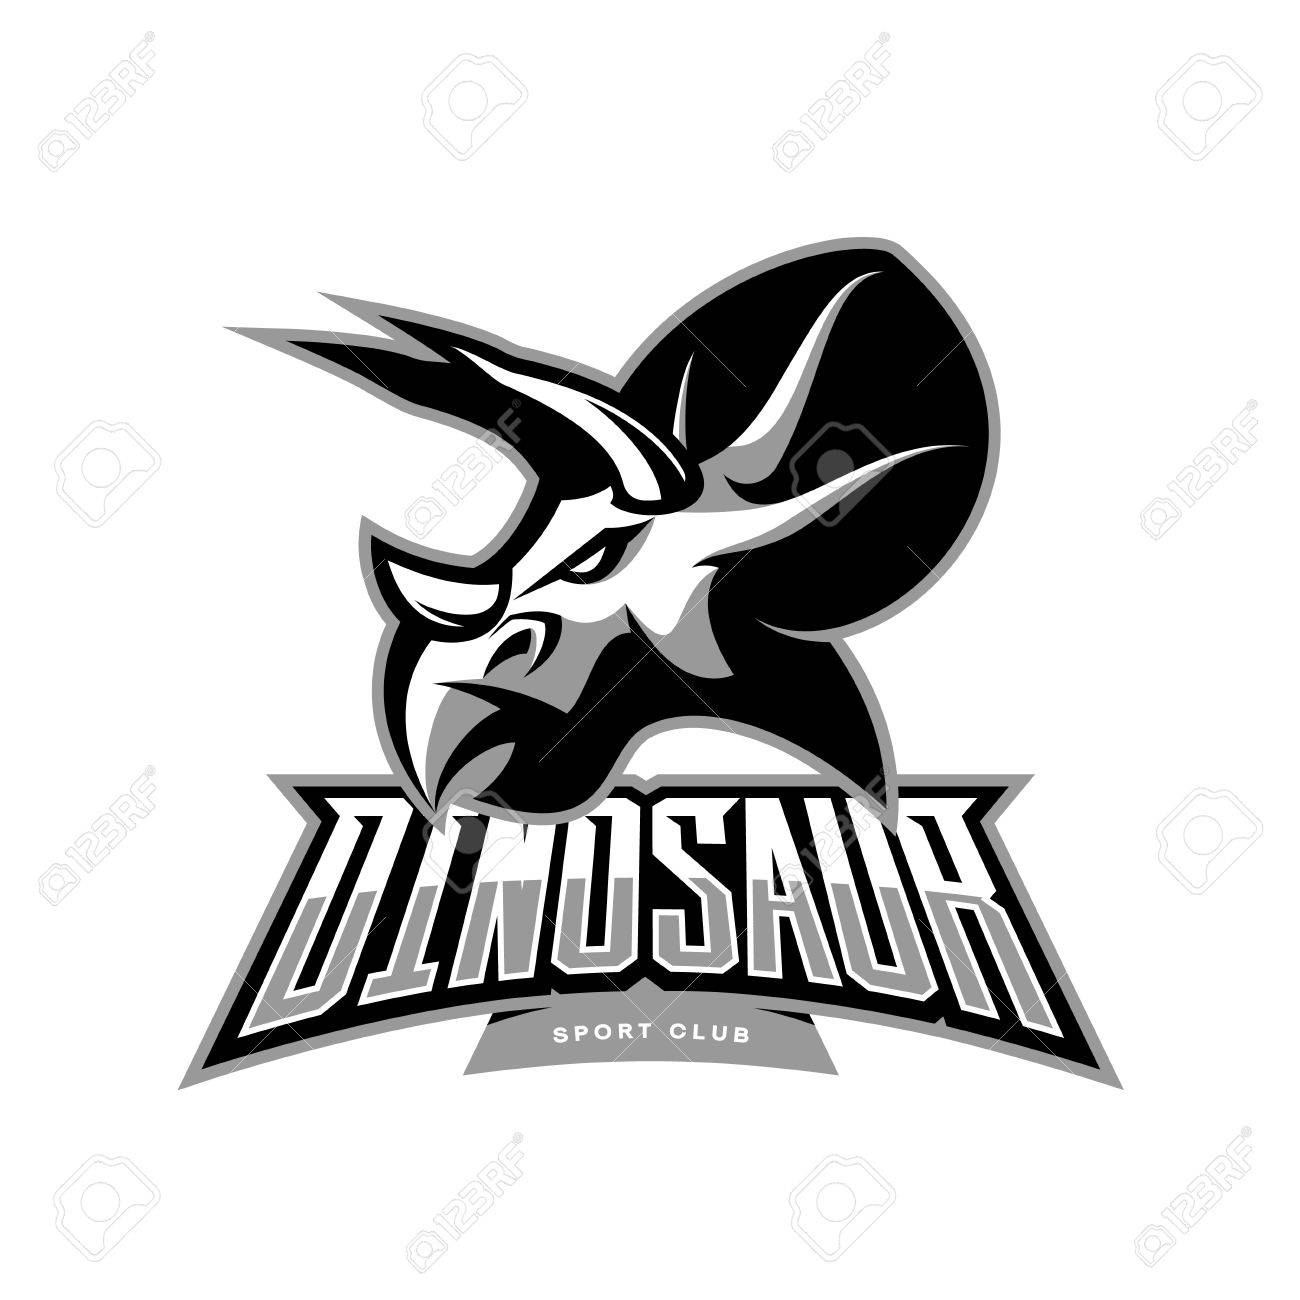 96c638099373 Savage monster icon. Furious dinosaur sport club vector logo concept  isolated on white background. Modern team badge mascot